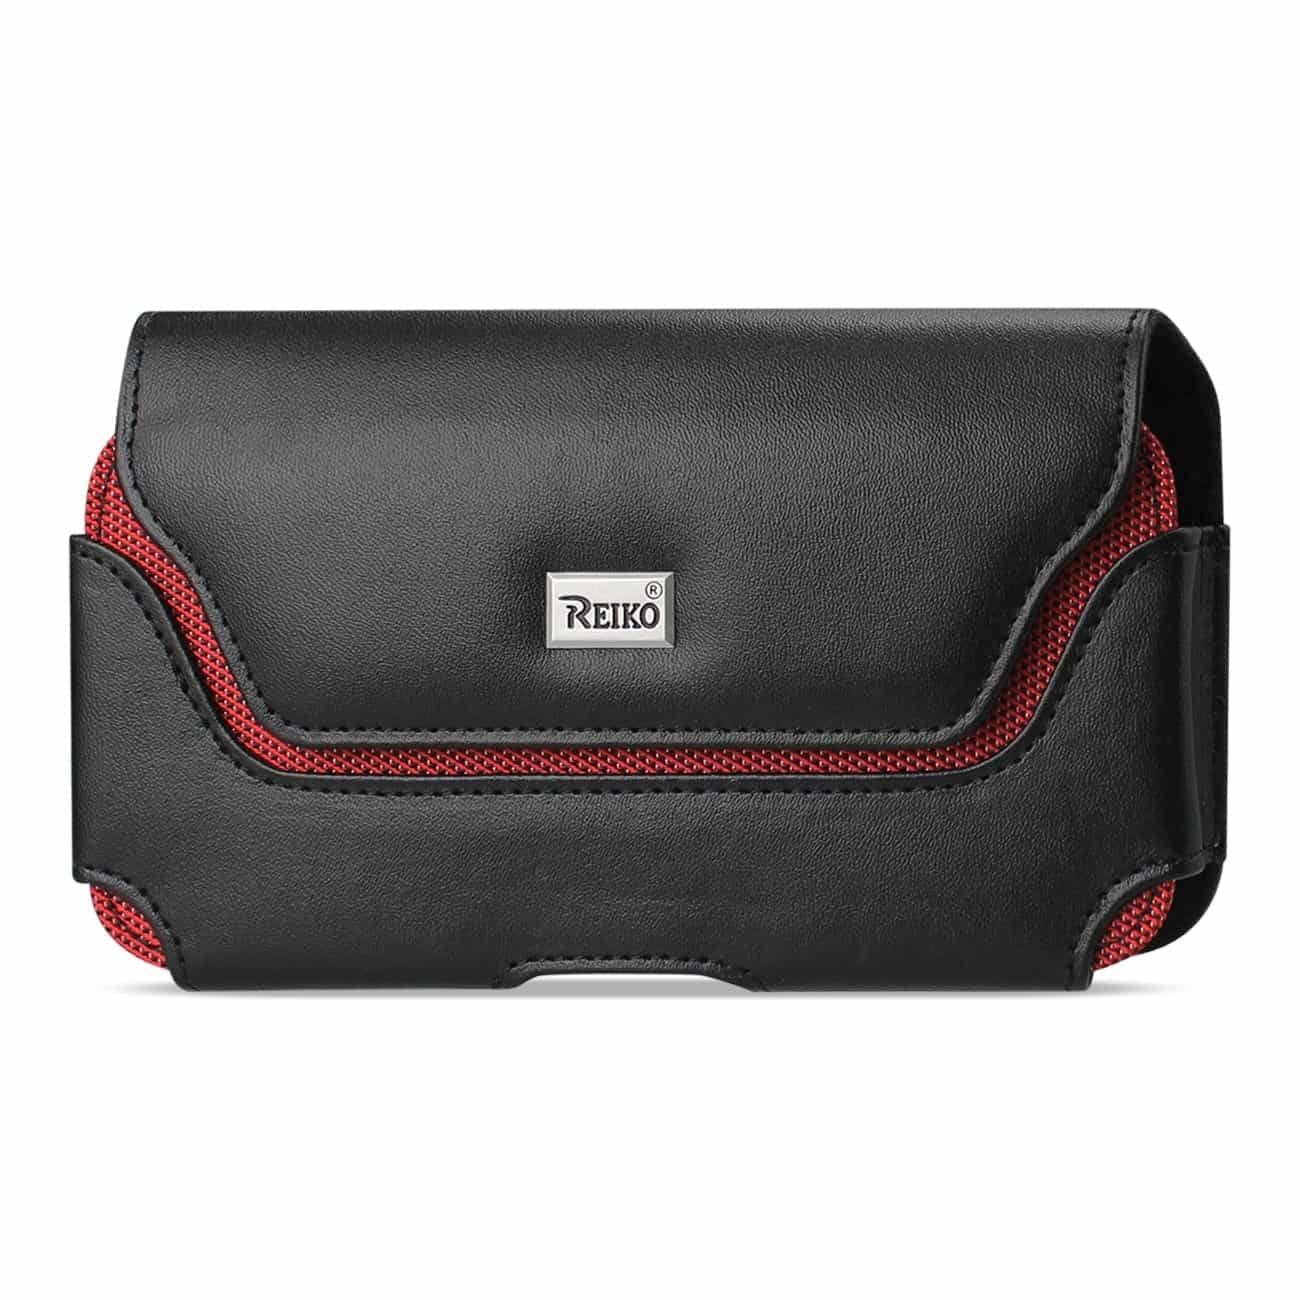 Horizontal Leather Pouch With Red Bee Nest Interior In Black (6.4X3.5X0.6 Inches)